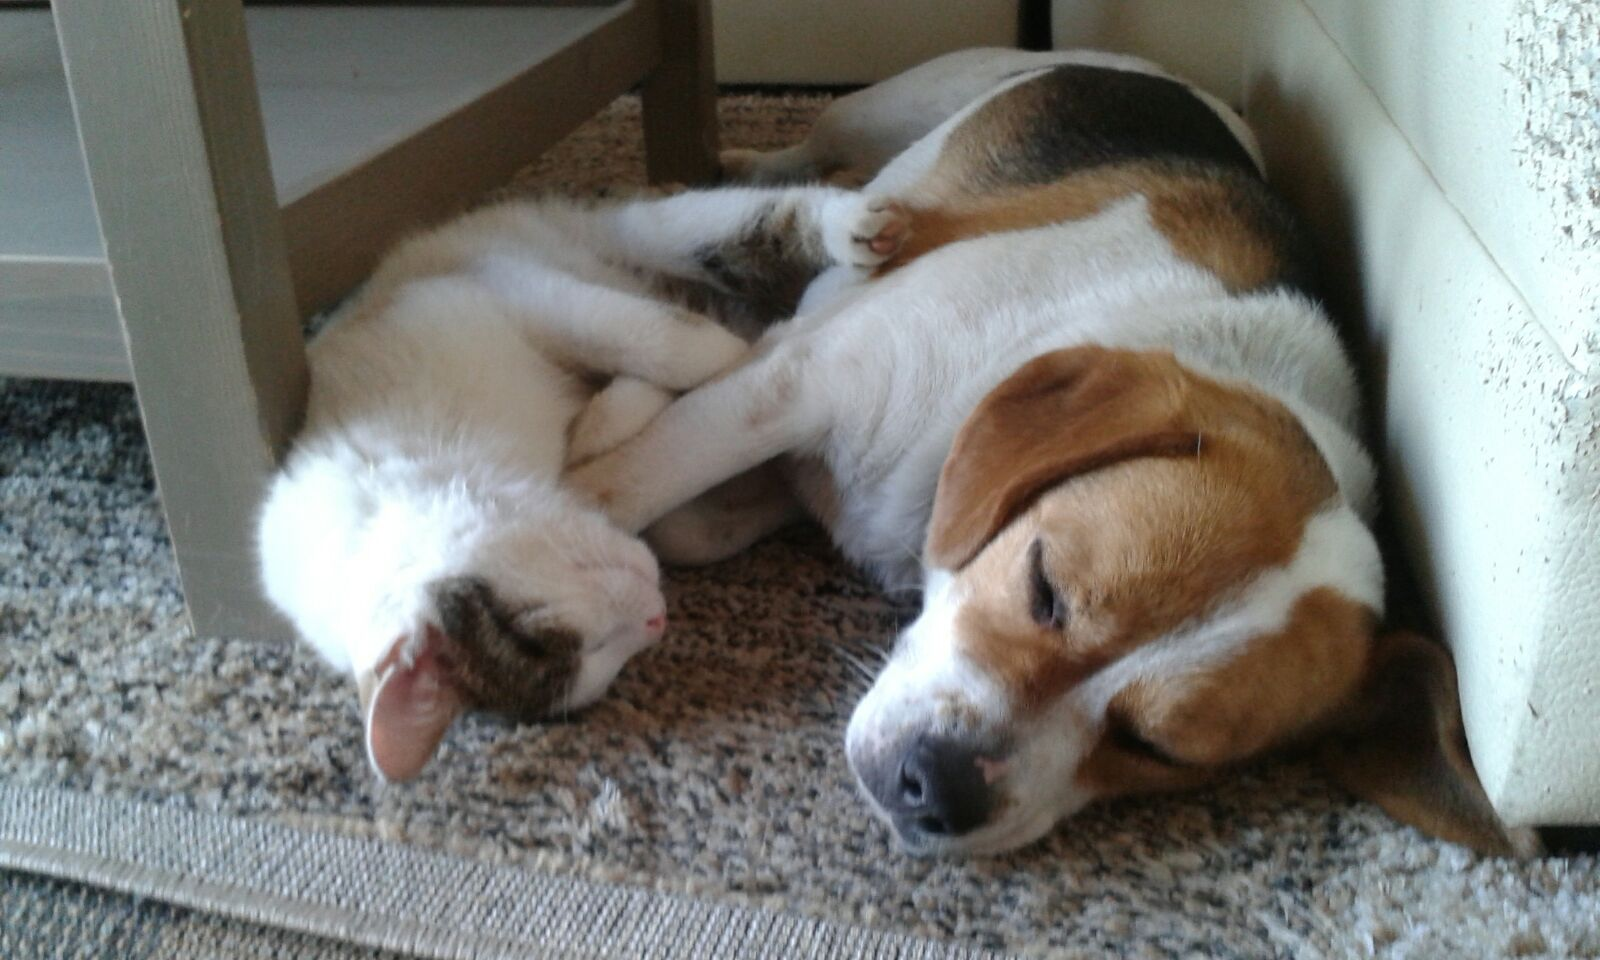 My cat and dog sleeping together https//ift.tt/2NwgZYM